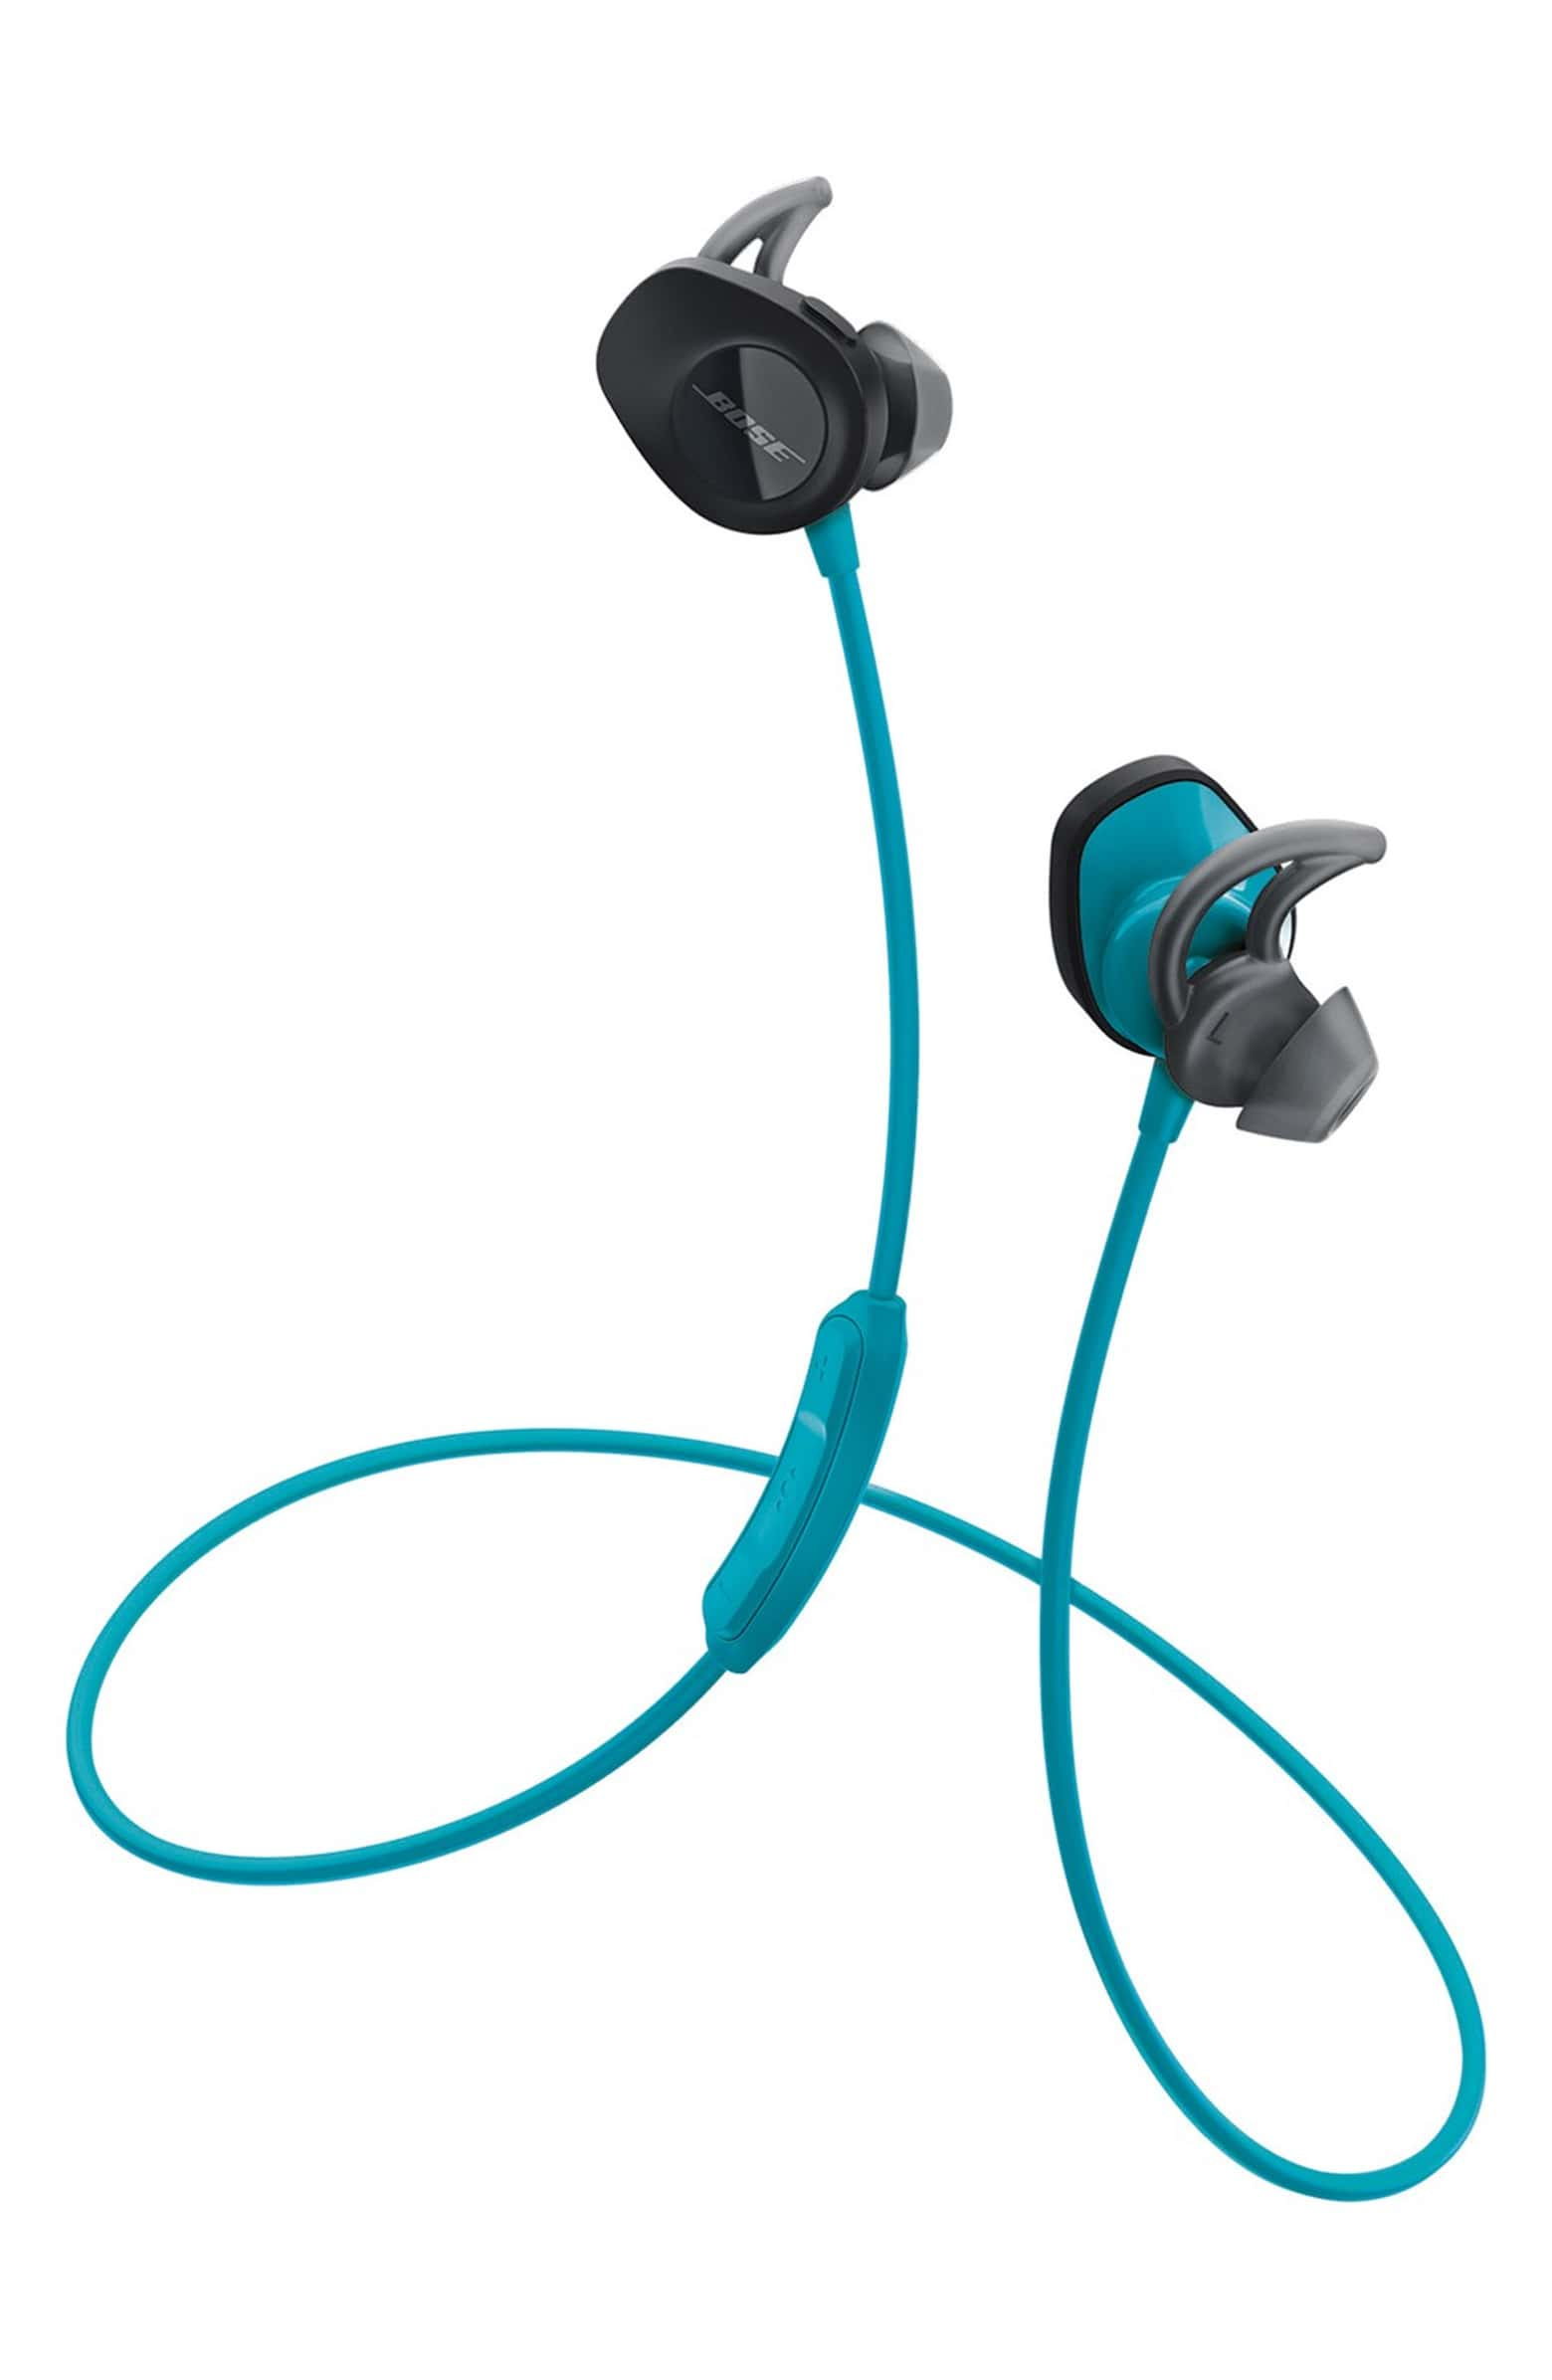 bose soundsport wireless headphones.jpeg